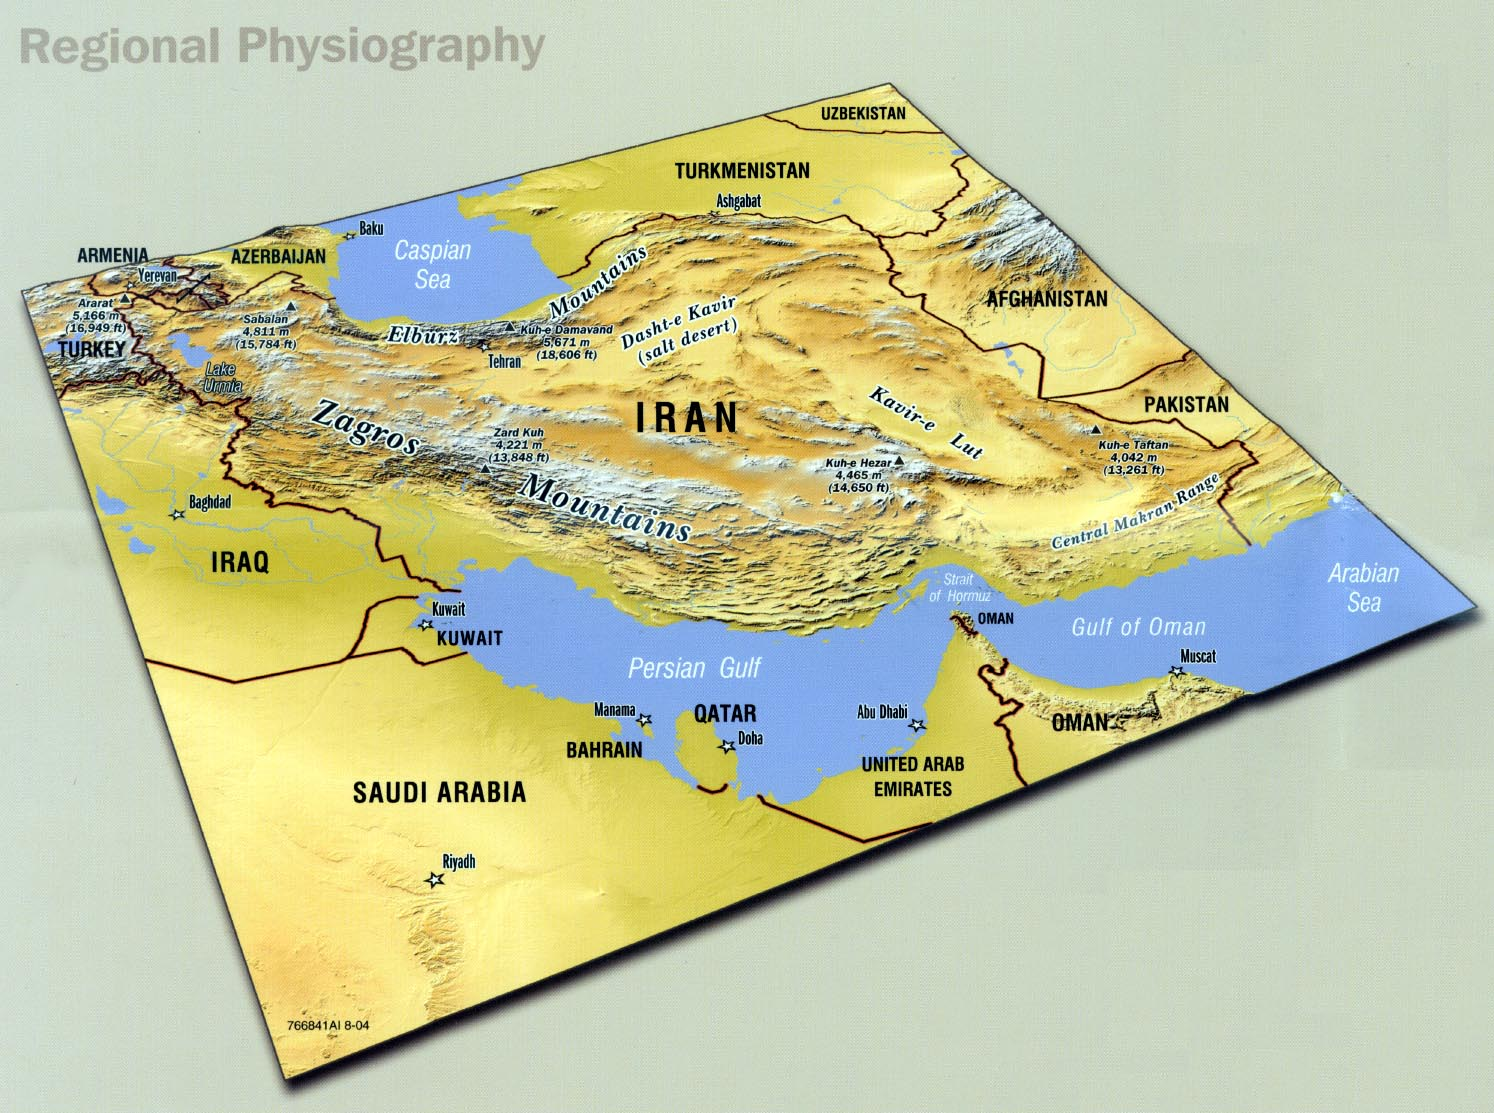 Iran maps charts regional physiography ciaut scan gumiabroncs Choice Image